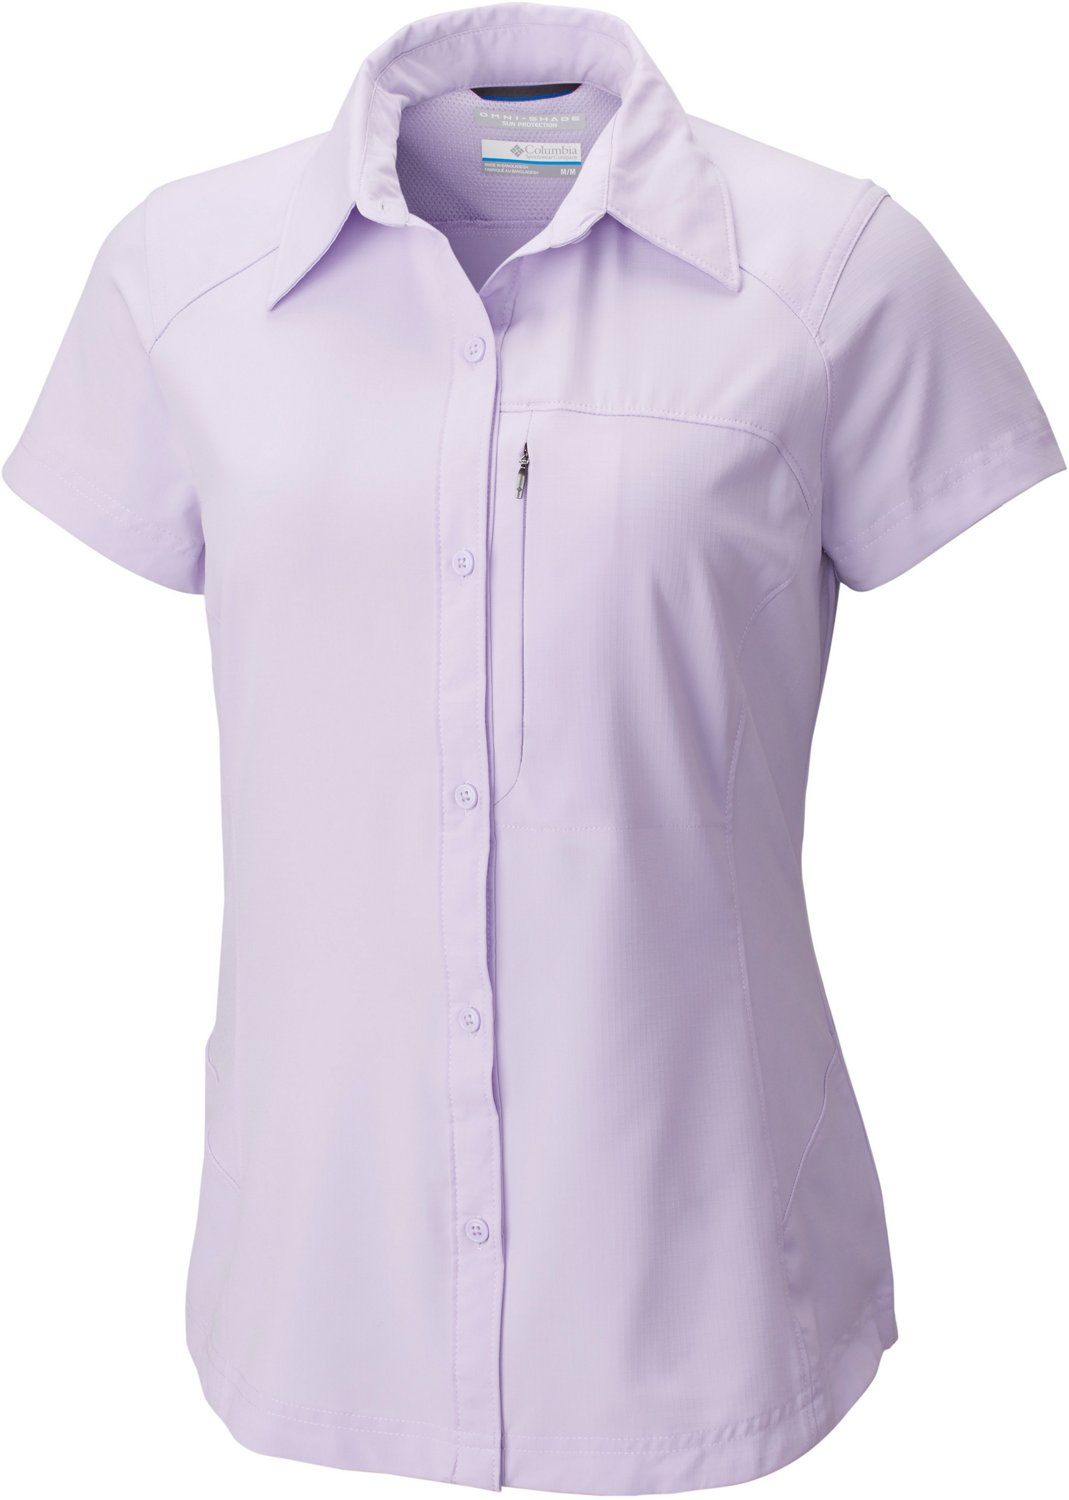 Columbia Sportswear Women's Silver Ridge Short Sleeve Shirt - view number 2